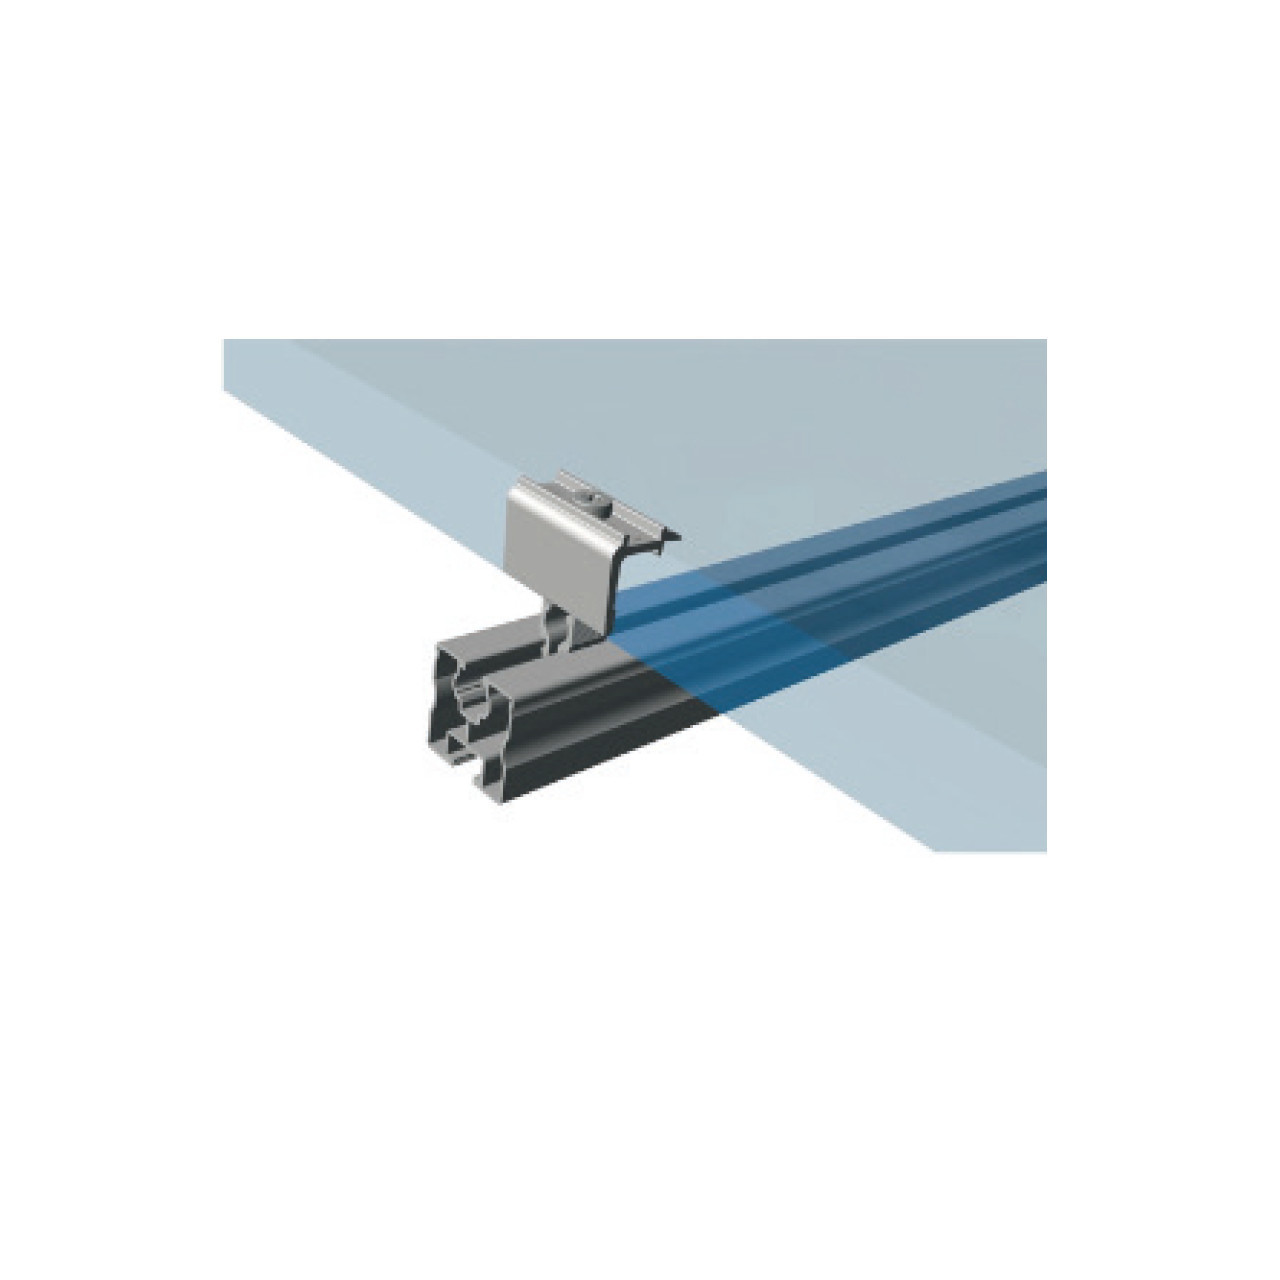 Schletter - Rapid16 Middle Clamp - Installed